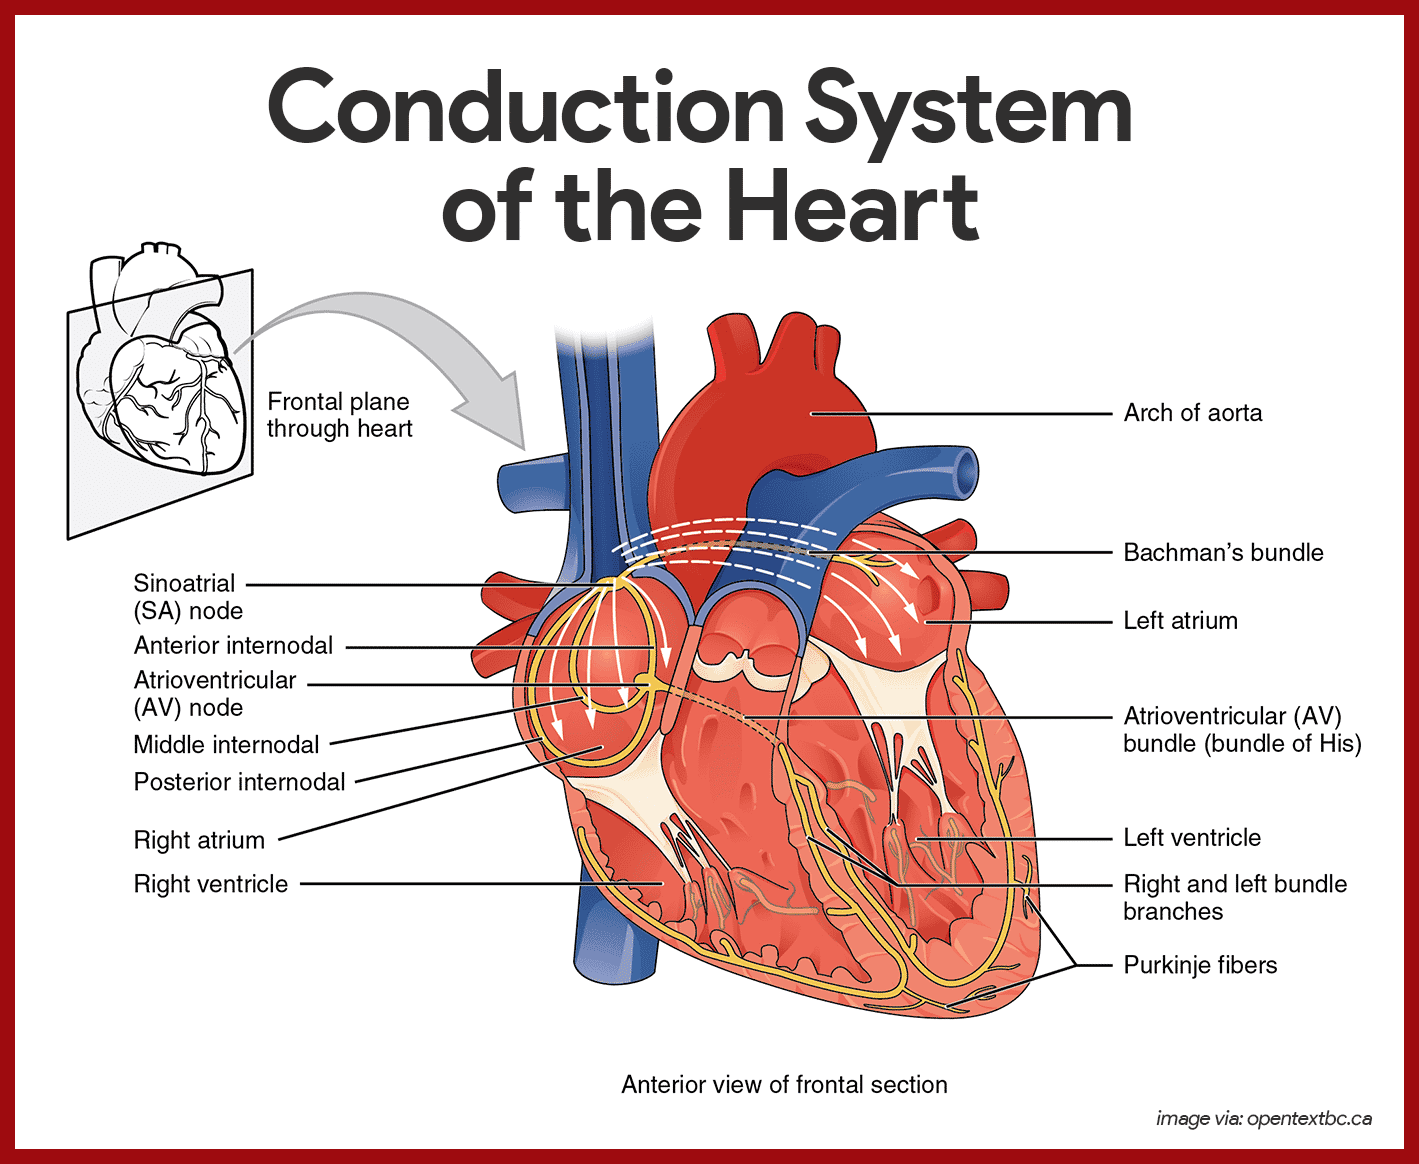 Conduction System of the Heart Anatomy and Physiology